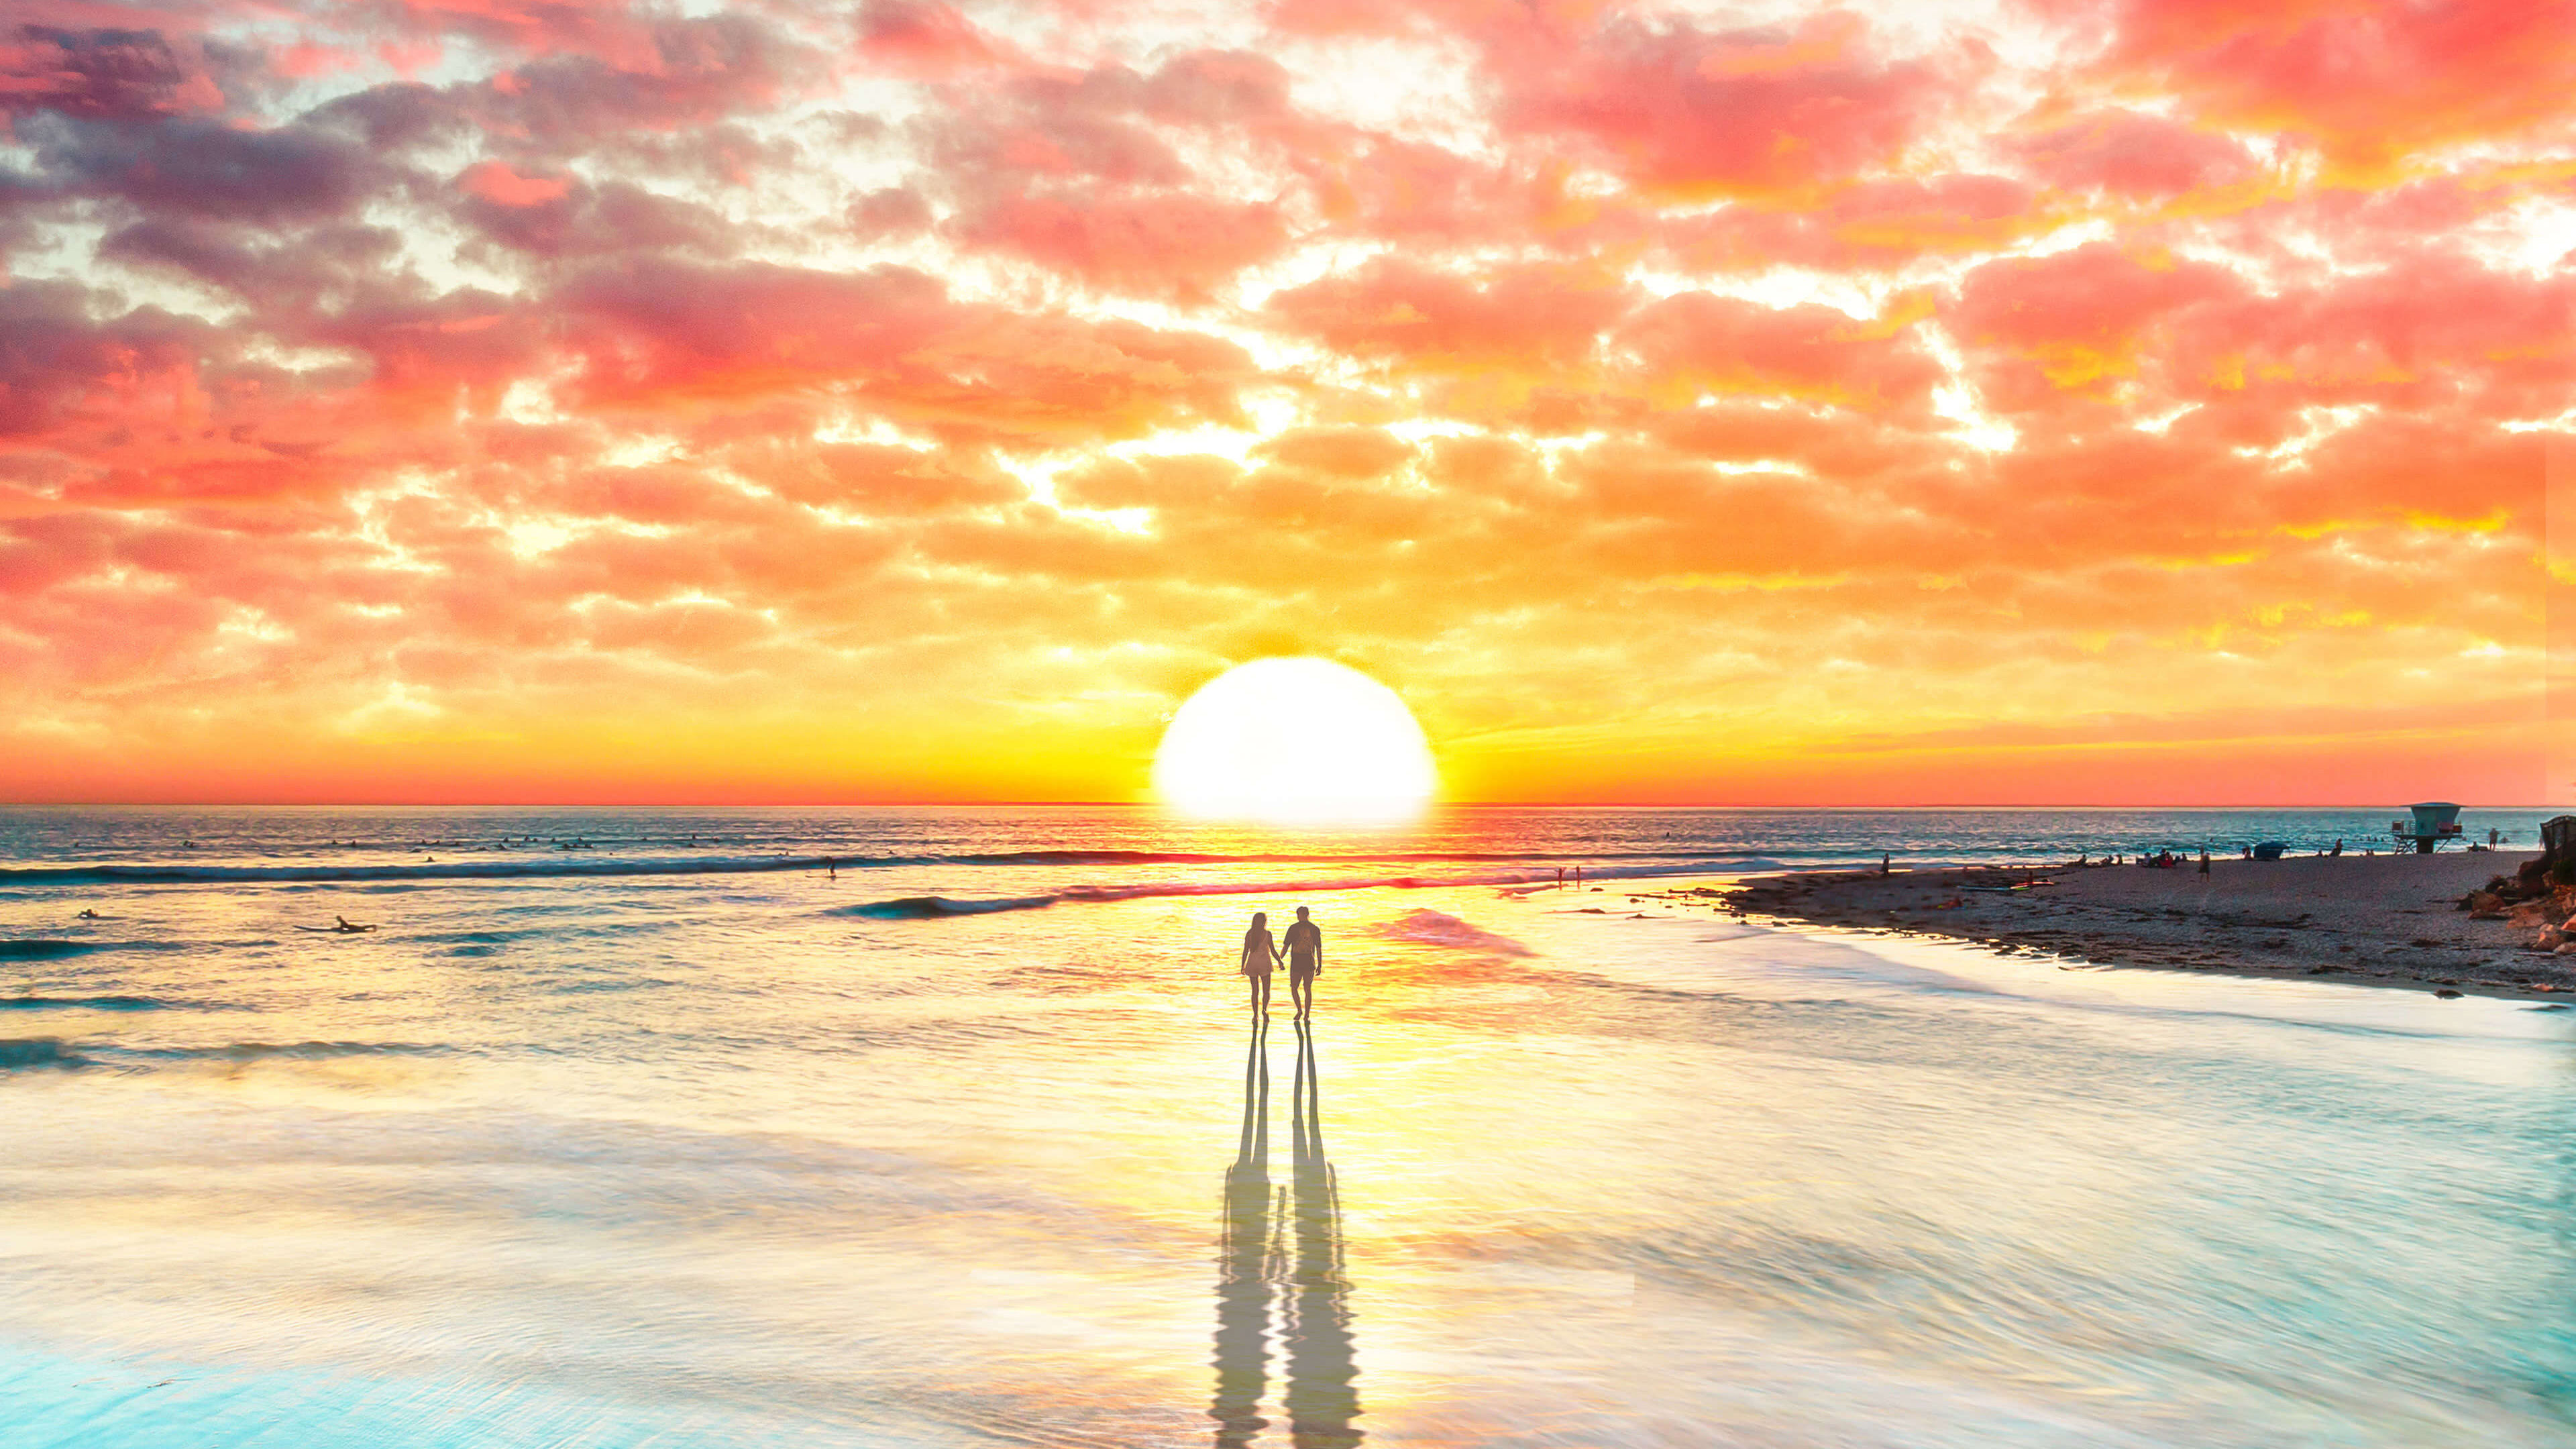 Beach Couple Watching Sunset 4k, HD Artist, 4k Wallpapers, Images, Backgrounds, Photos and Pictures